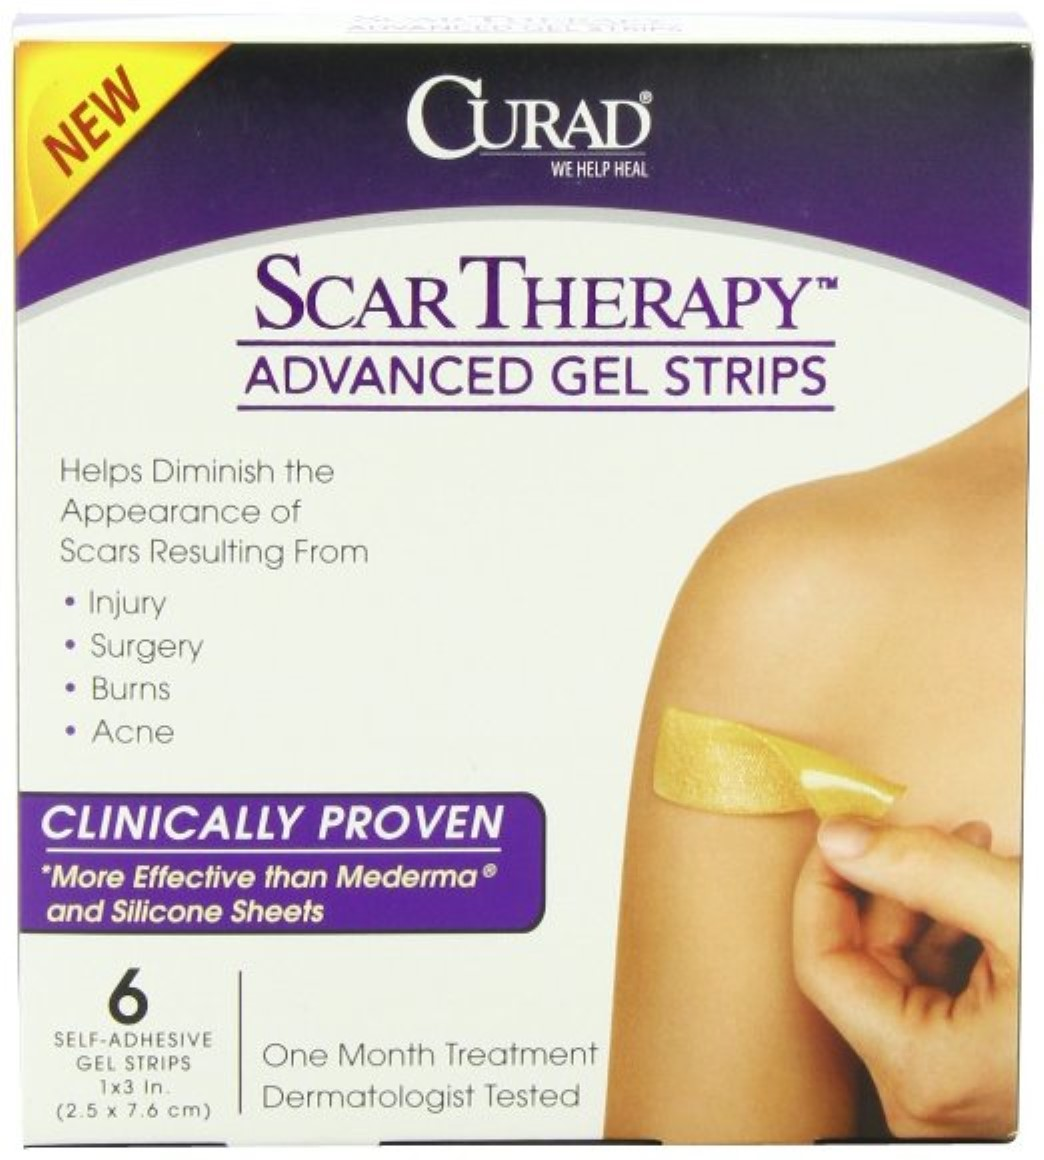 Curad Scar Therapy Advanced Gel Strips 6 Each (Pack of 2)